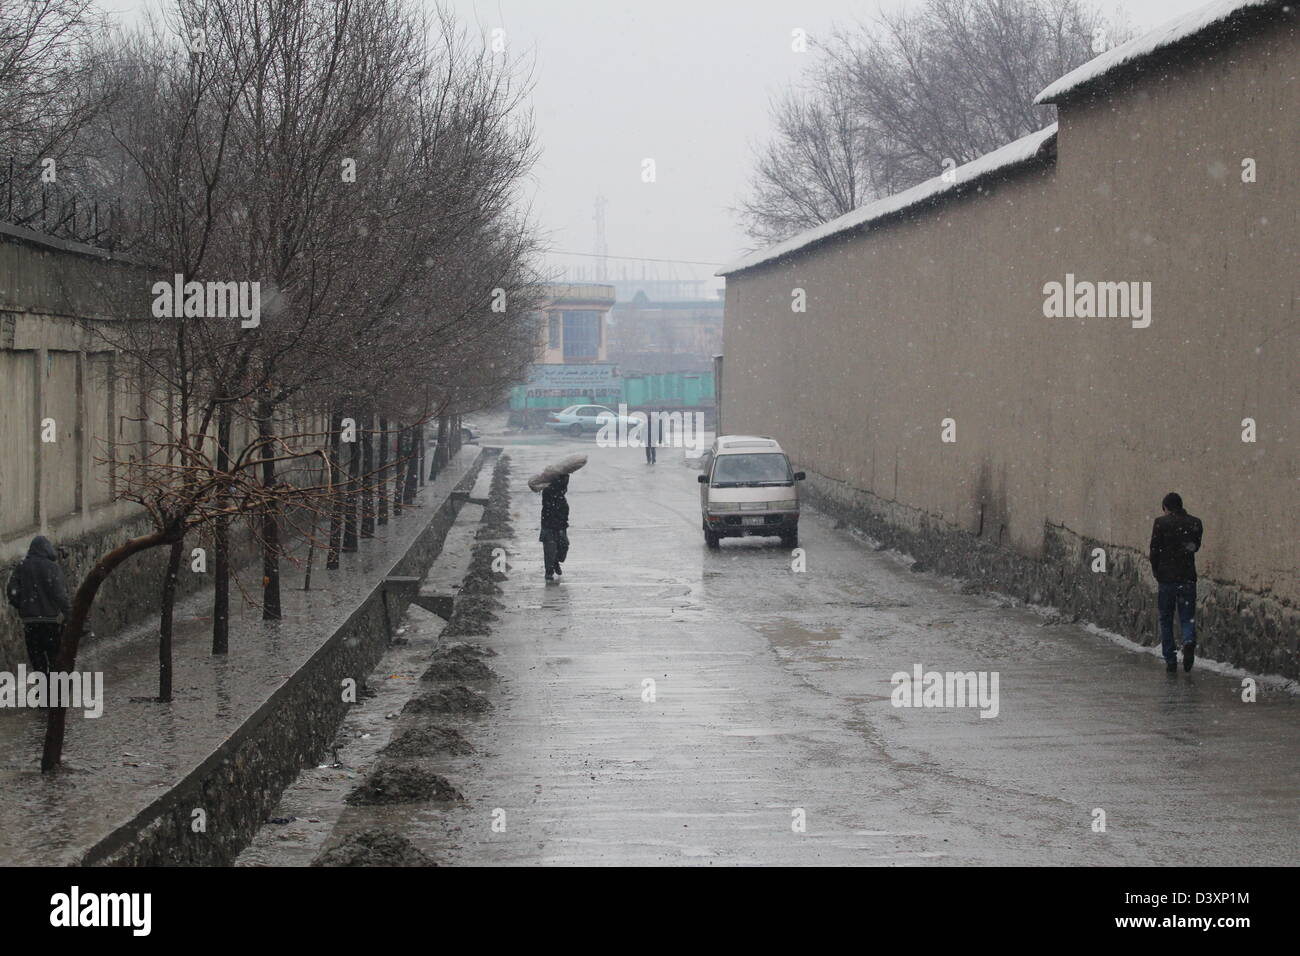 A sodden street in Kabul. Resident stoop low against a wet wind. - Stock Image